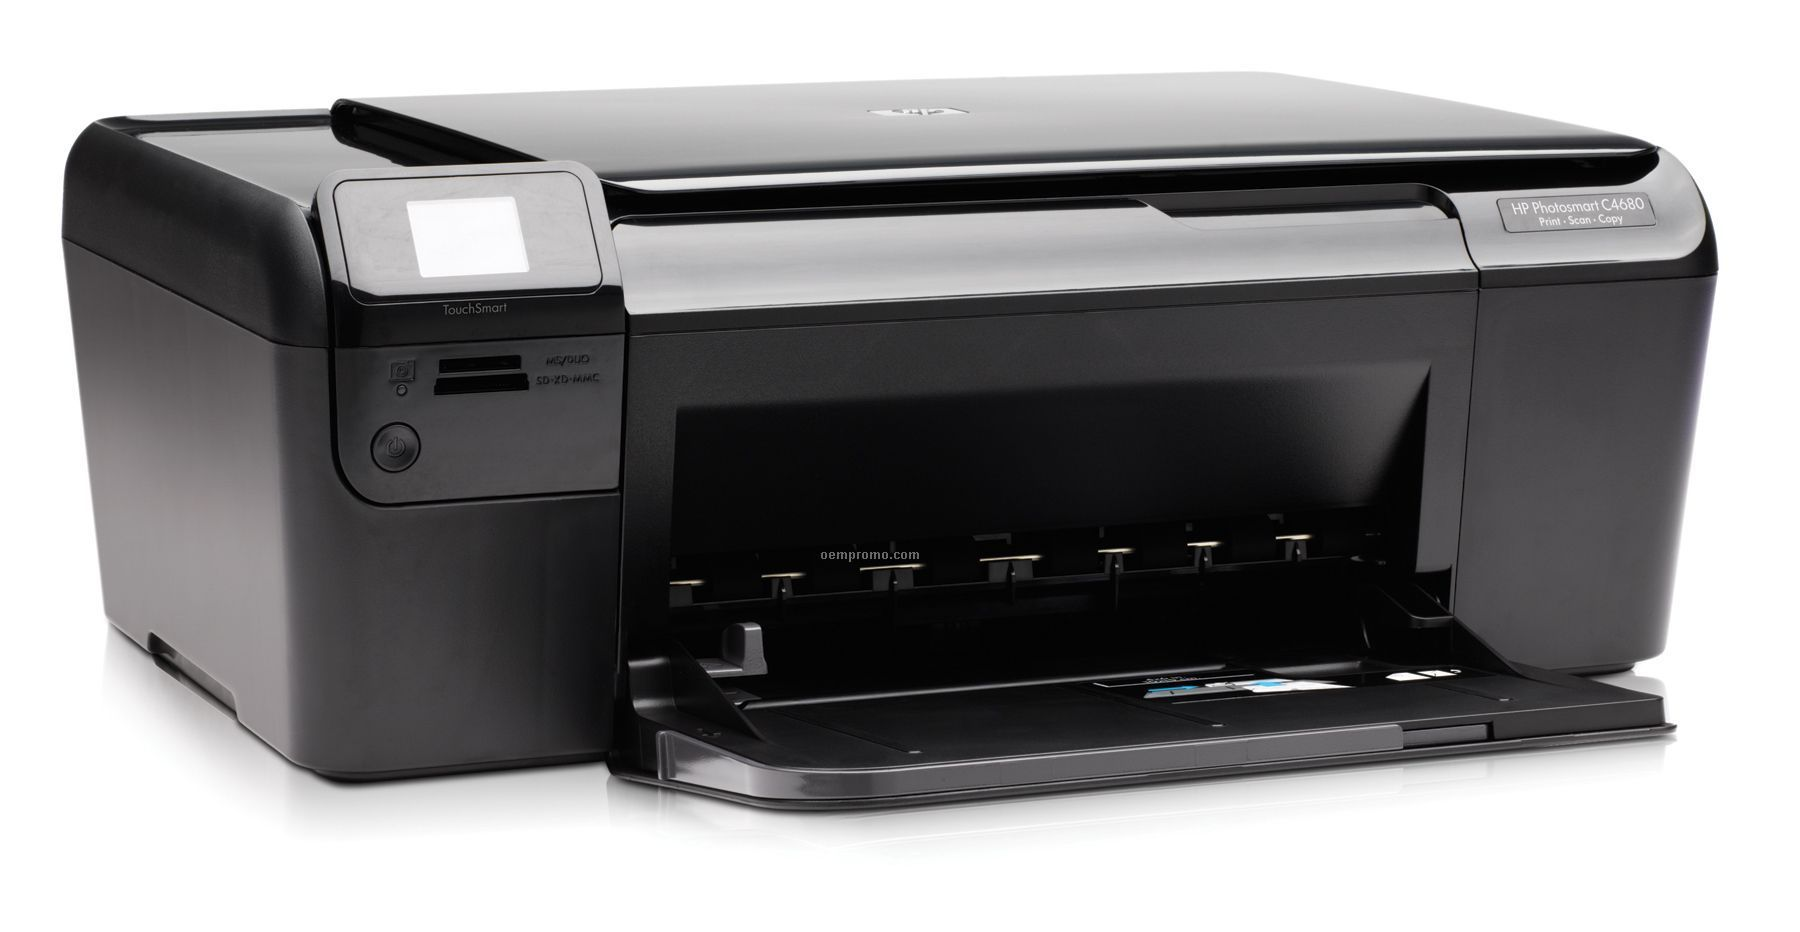 Image result for printer with scanner images wireless